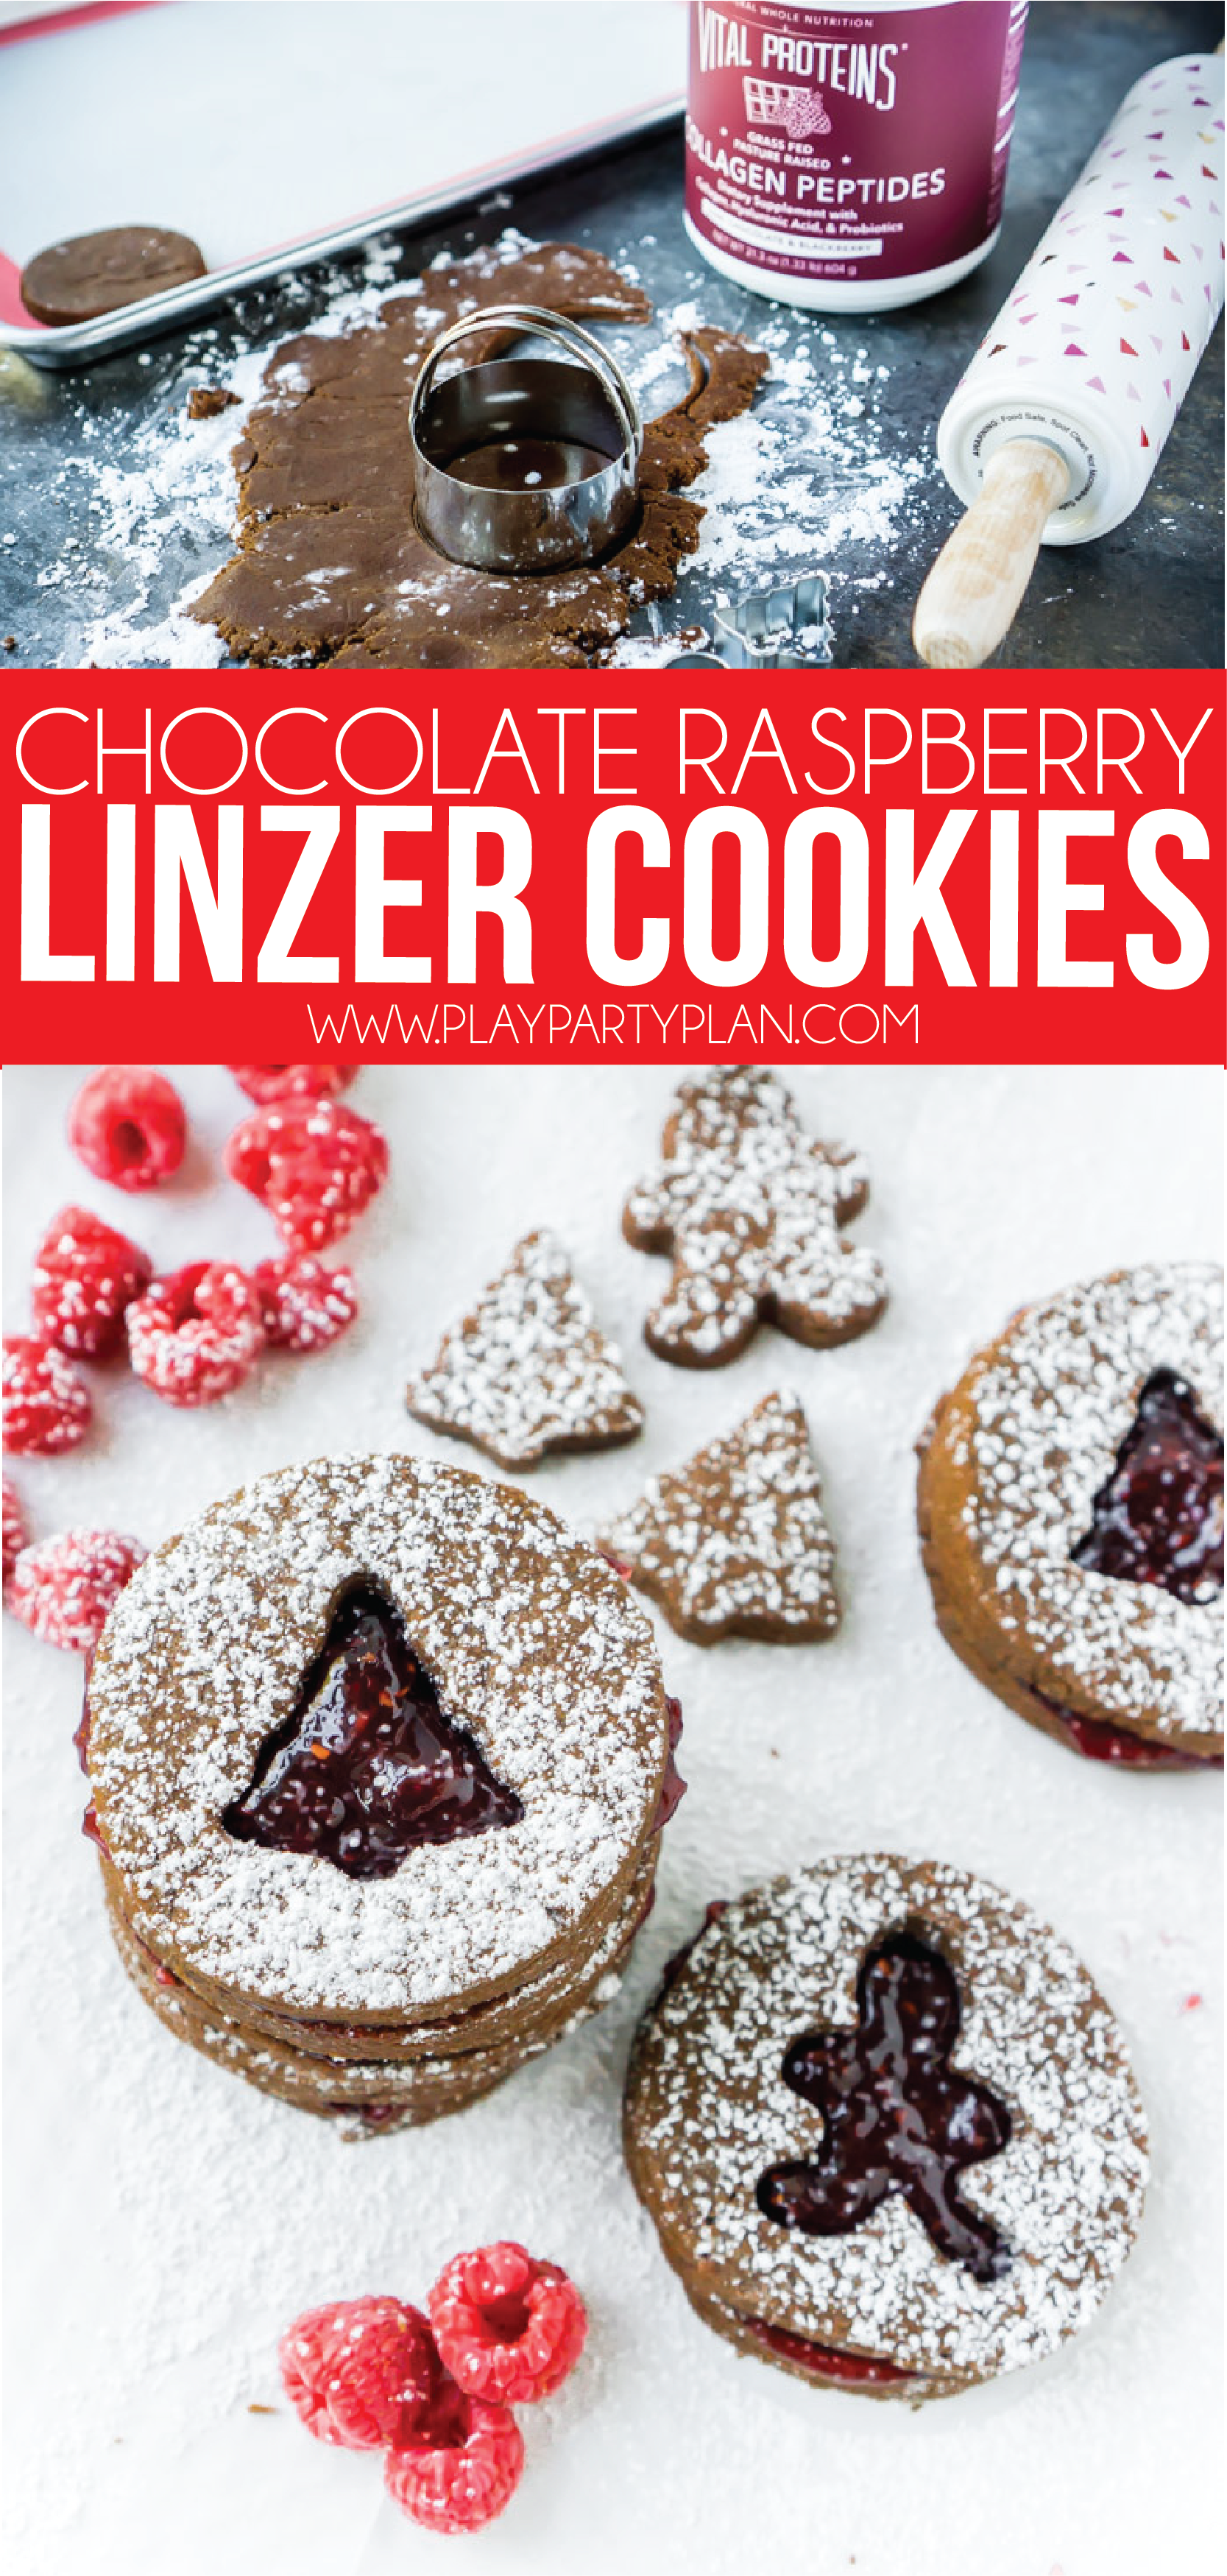 These chocolate raspberry Linzer cookies are not only some of the best Christmas cookies, if you overlook all the sugar, they're even healthy for you! They're soft, easy to make, and have a delicious raspberry filling!